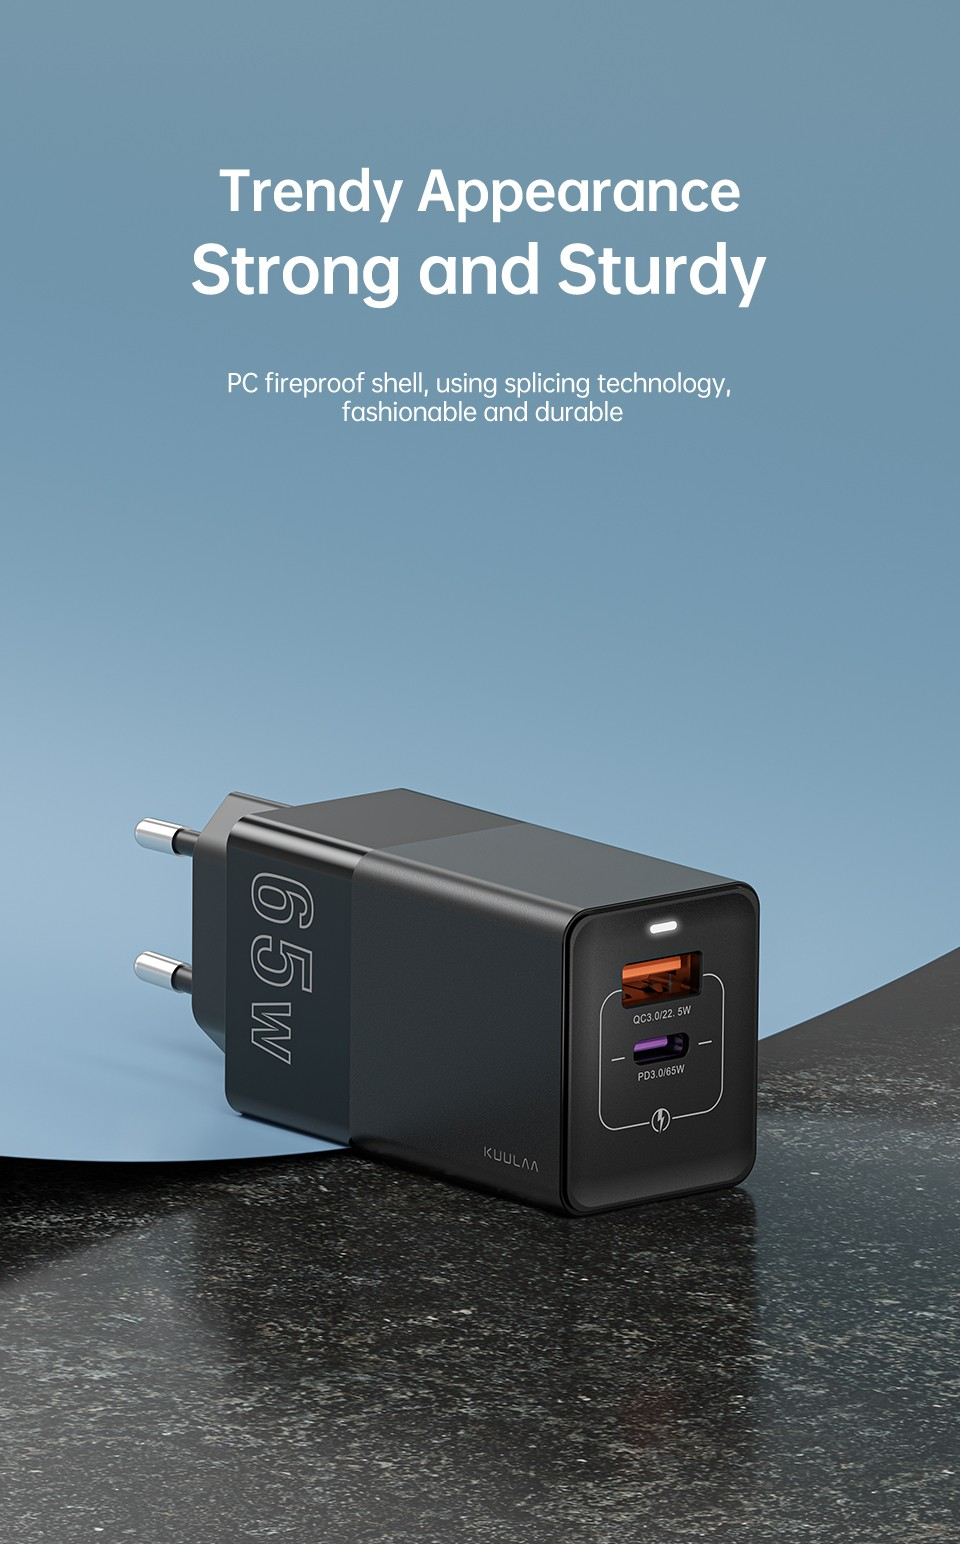 Kuulaa KL-CD14 65W Charger Trendy Appearance,  Strong and Sturdy